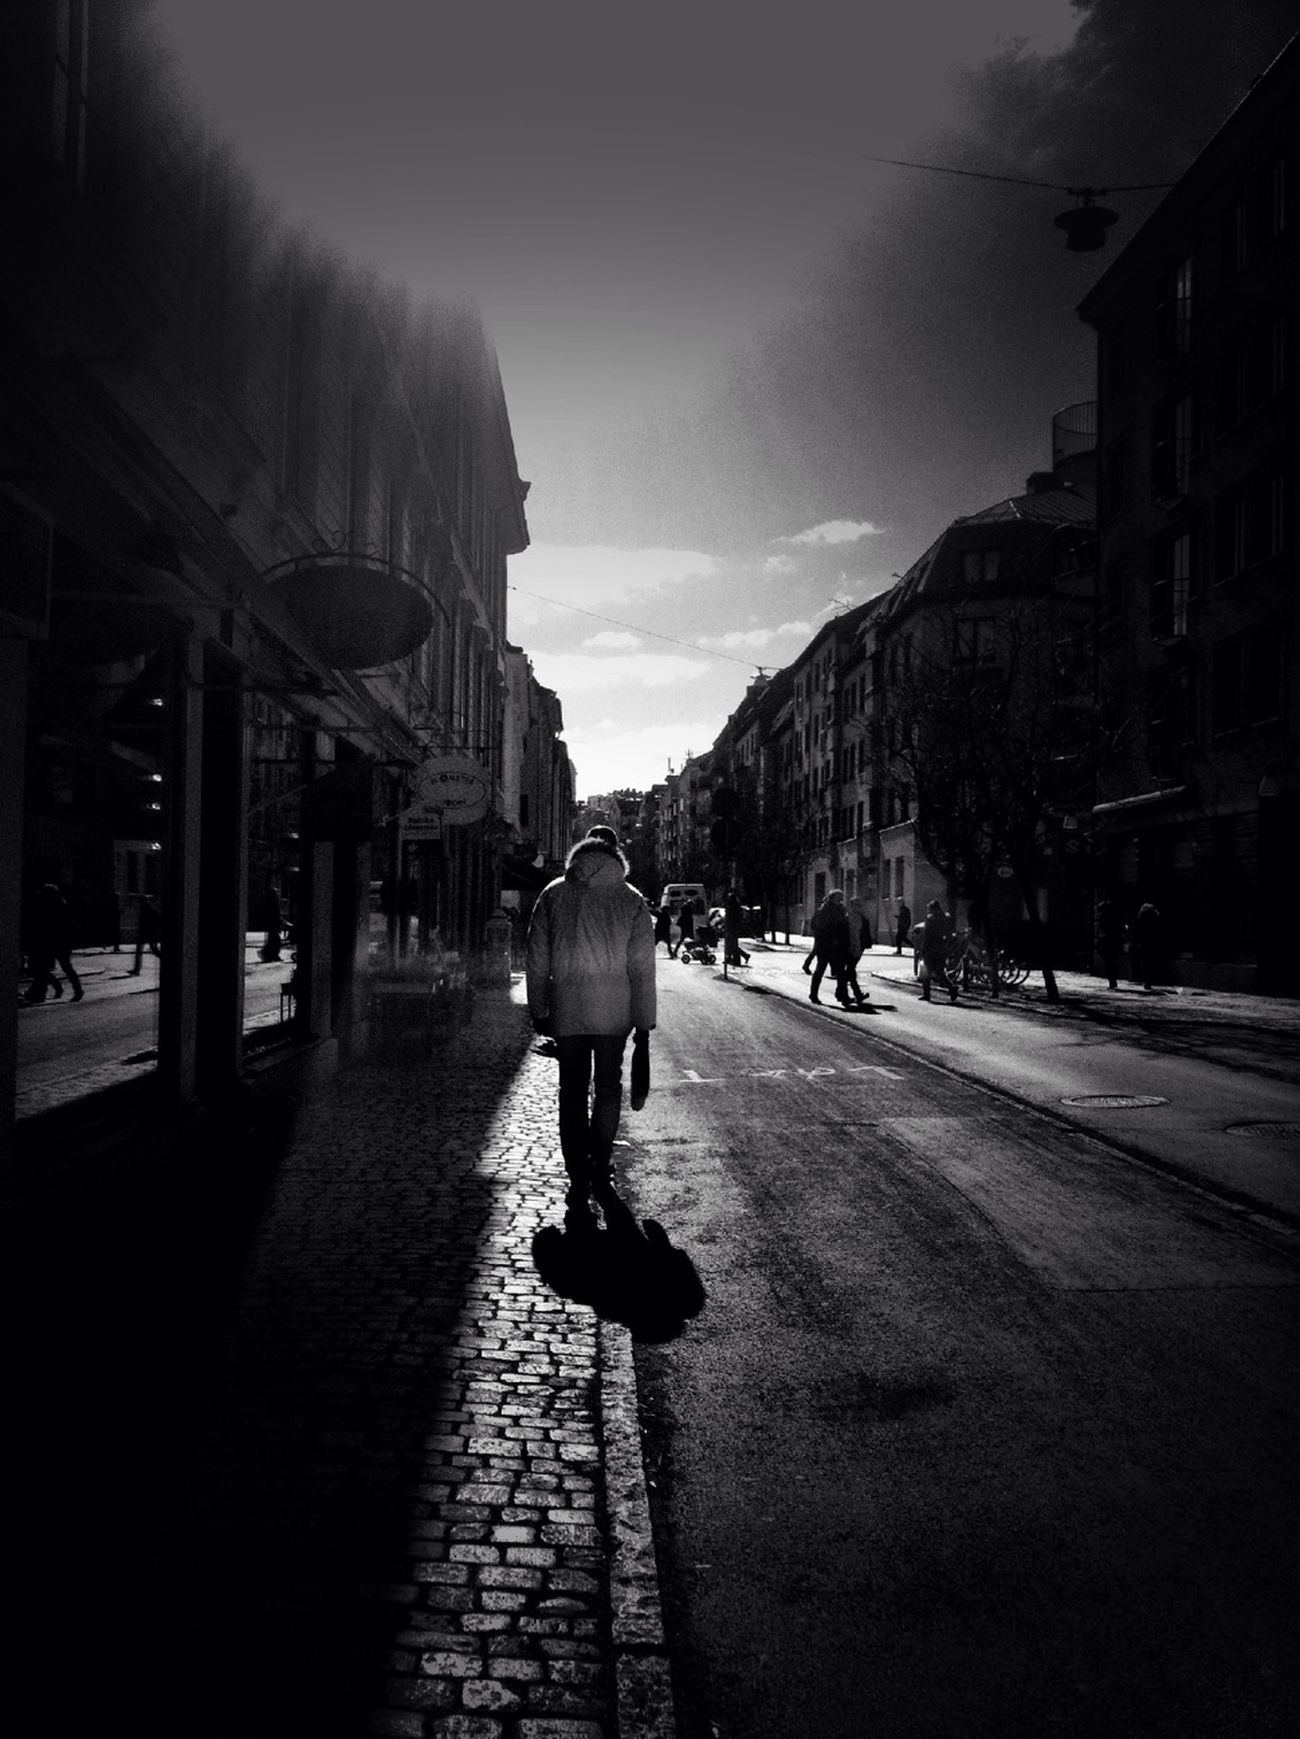 Streetphoto_bw AMPt_community Nordic Light Dear Heart, Why Him?